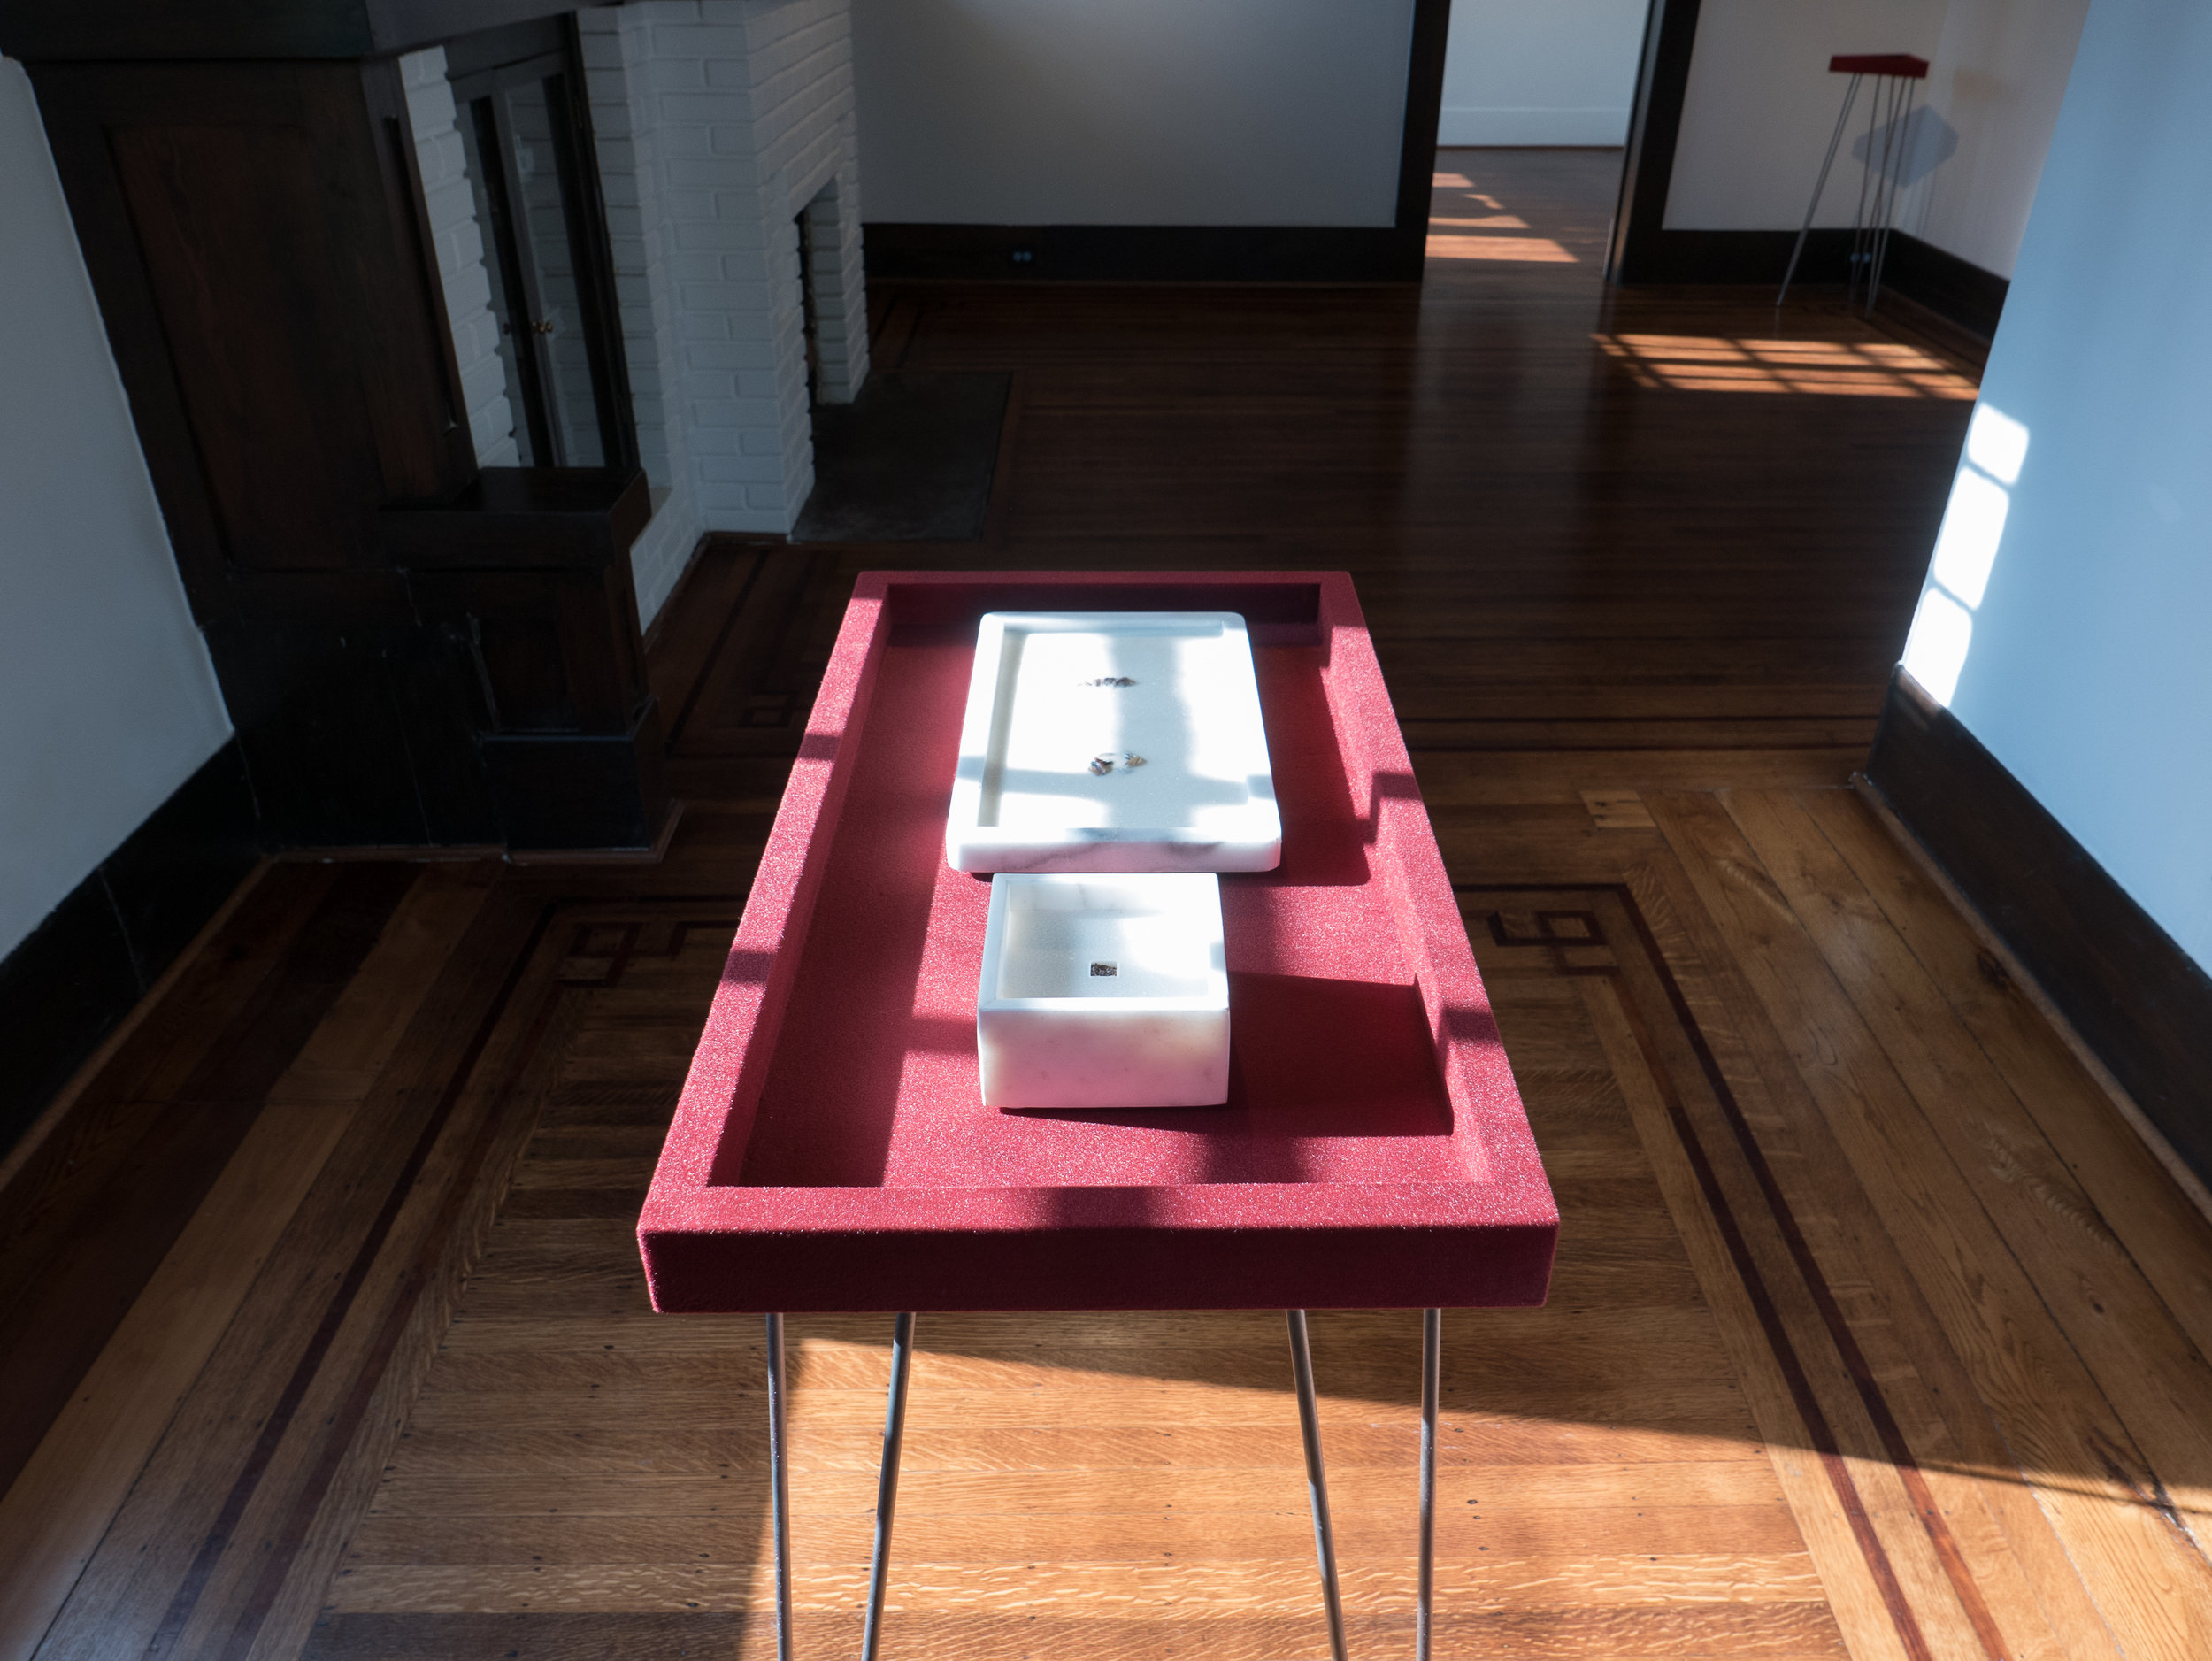 smother Installation Images (20 of 24).jpg